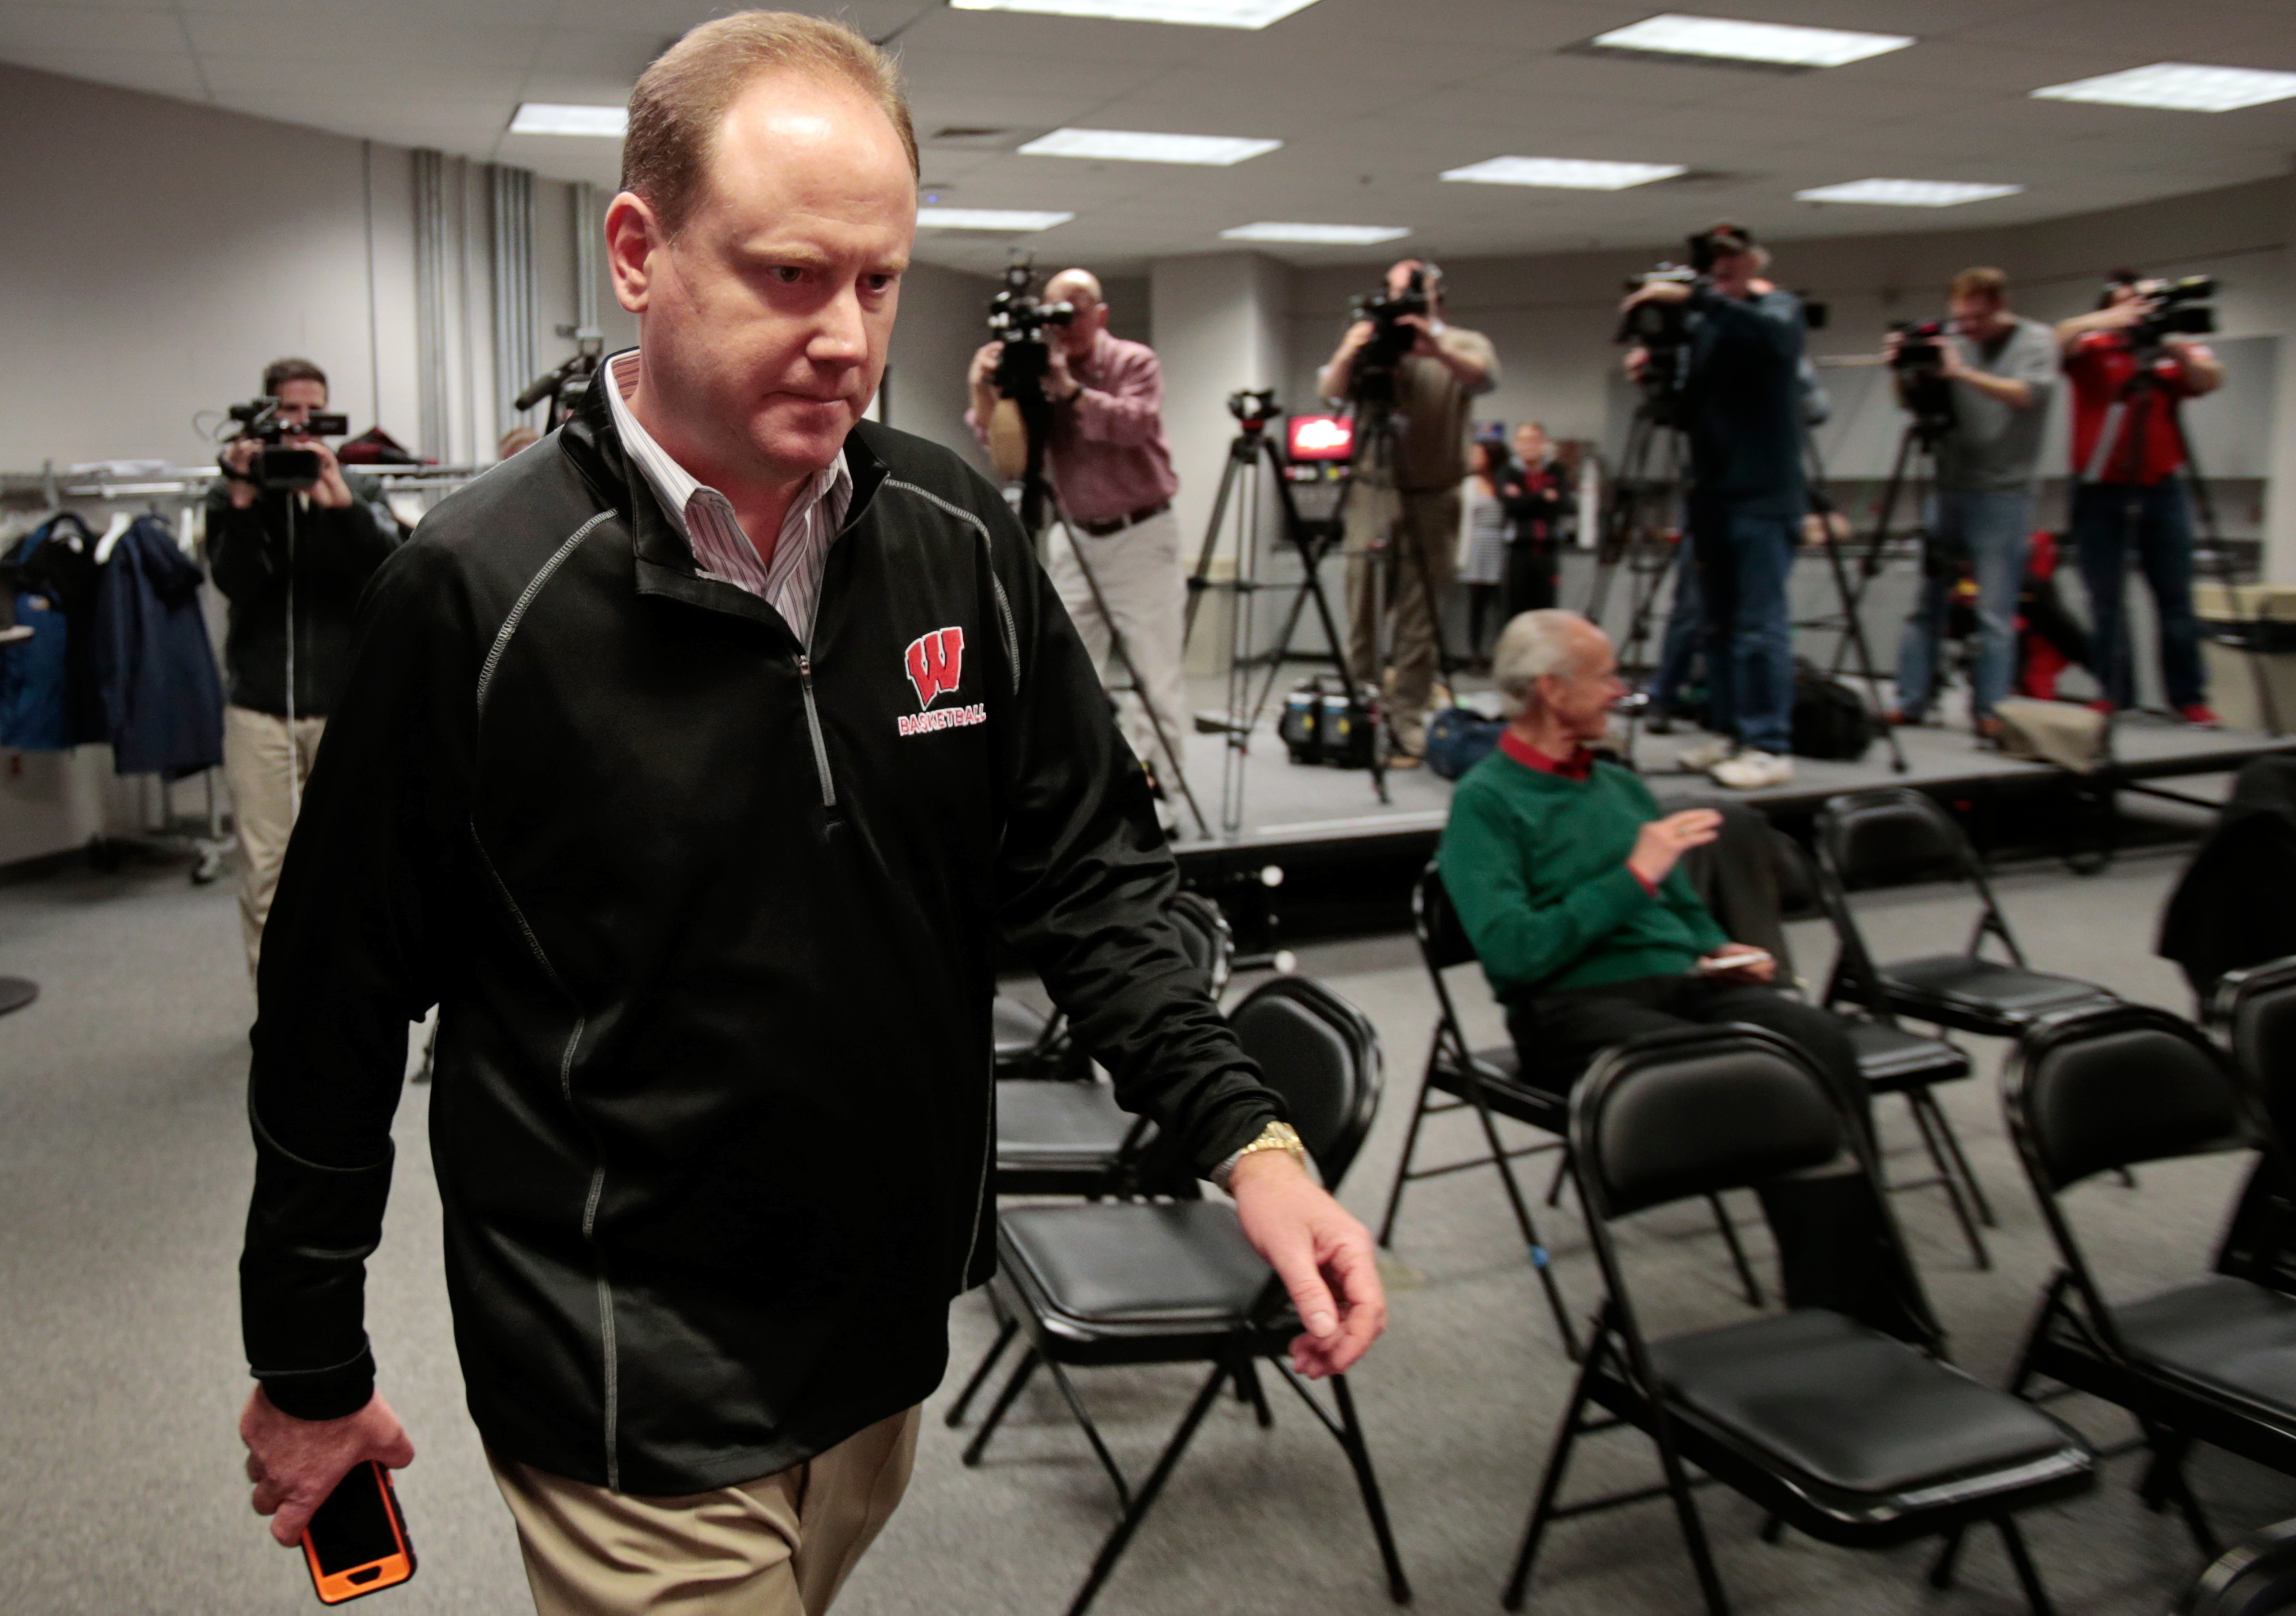 Wisconsin interim head coach Greg Gard arrives for an NCAA college basketball press conference at the Kohl Center in Madison, Wis., Wednesday, Dec. 16, 2015. Bo Ryan, the team's head coach since 2001, announced his retirement Tuesday after his team's win